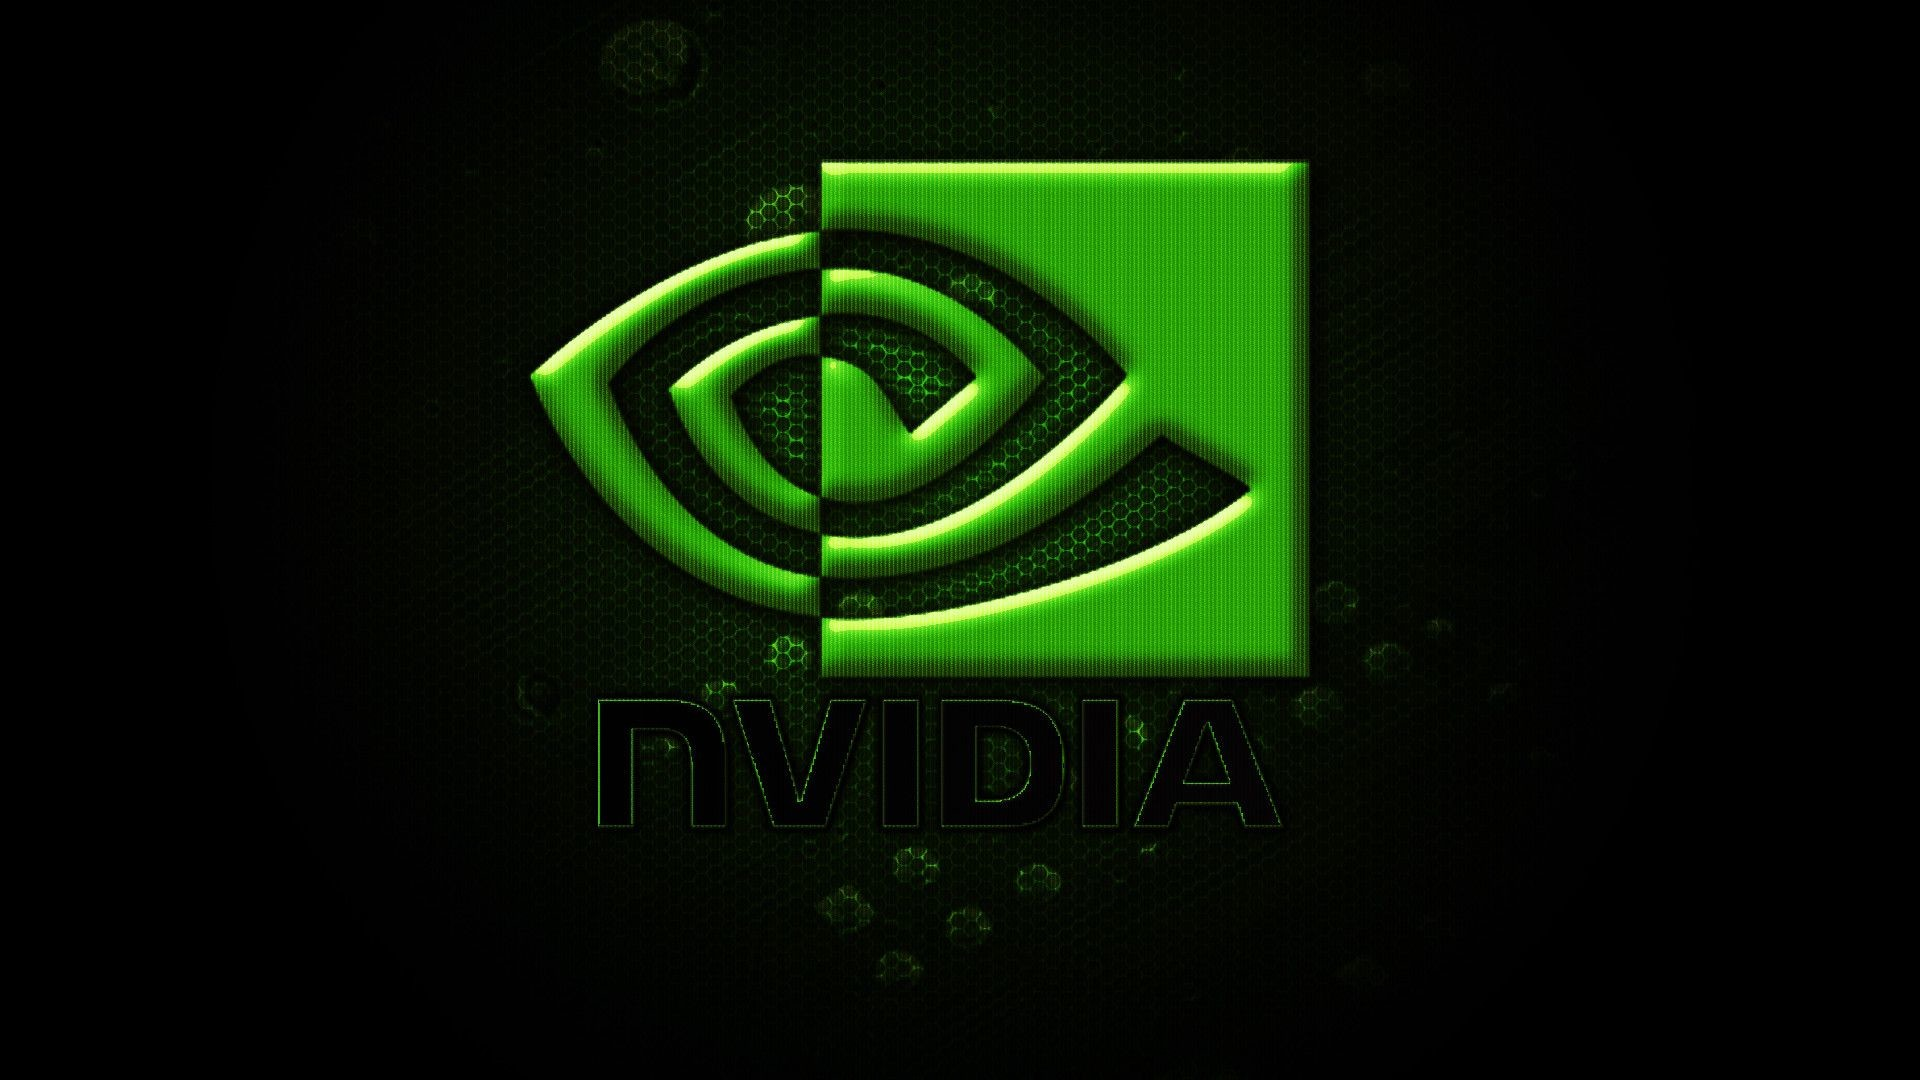 Compare Prices on Nvidia Logos- Online Shopping/Buy Low Price .